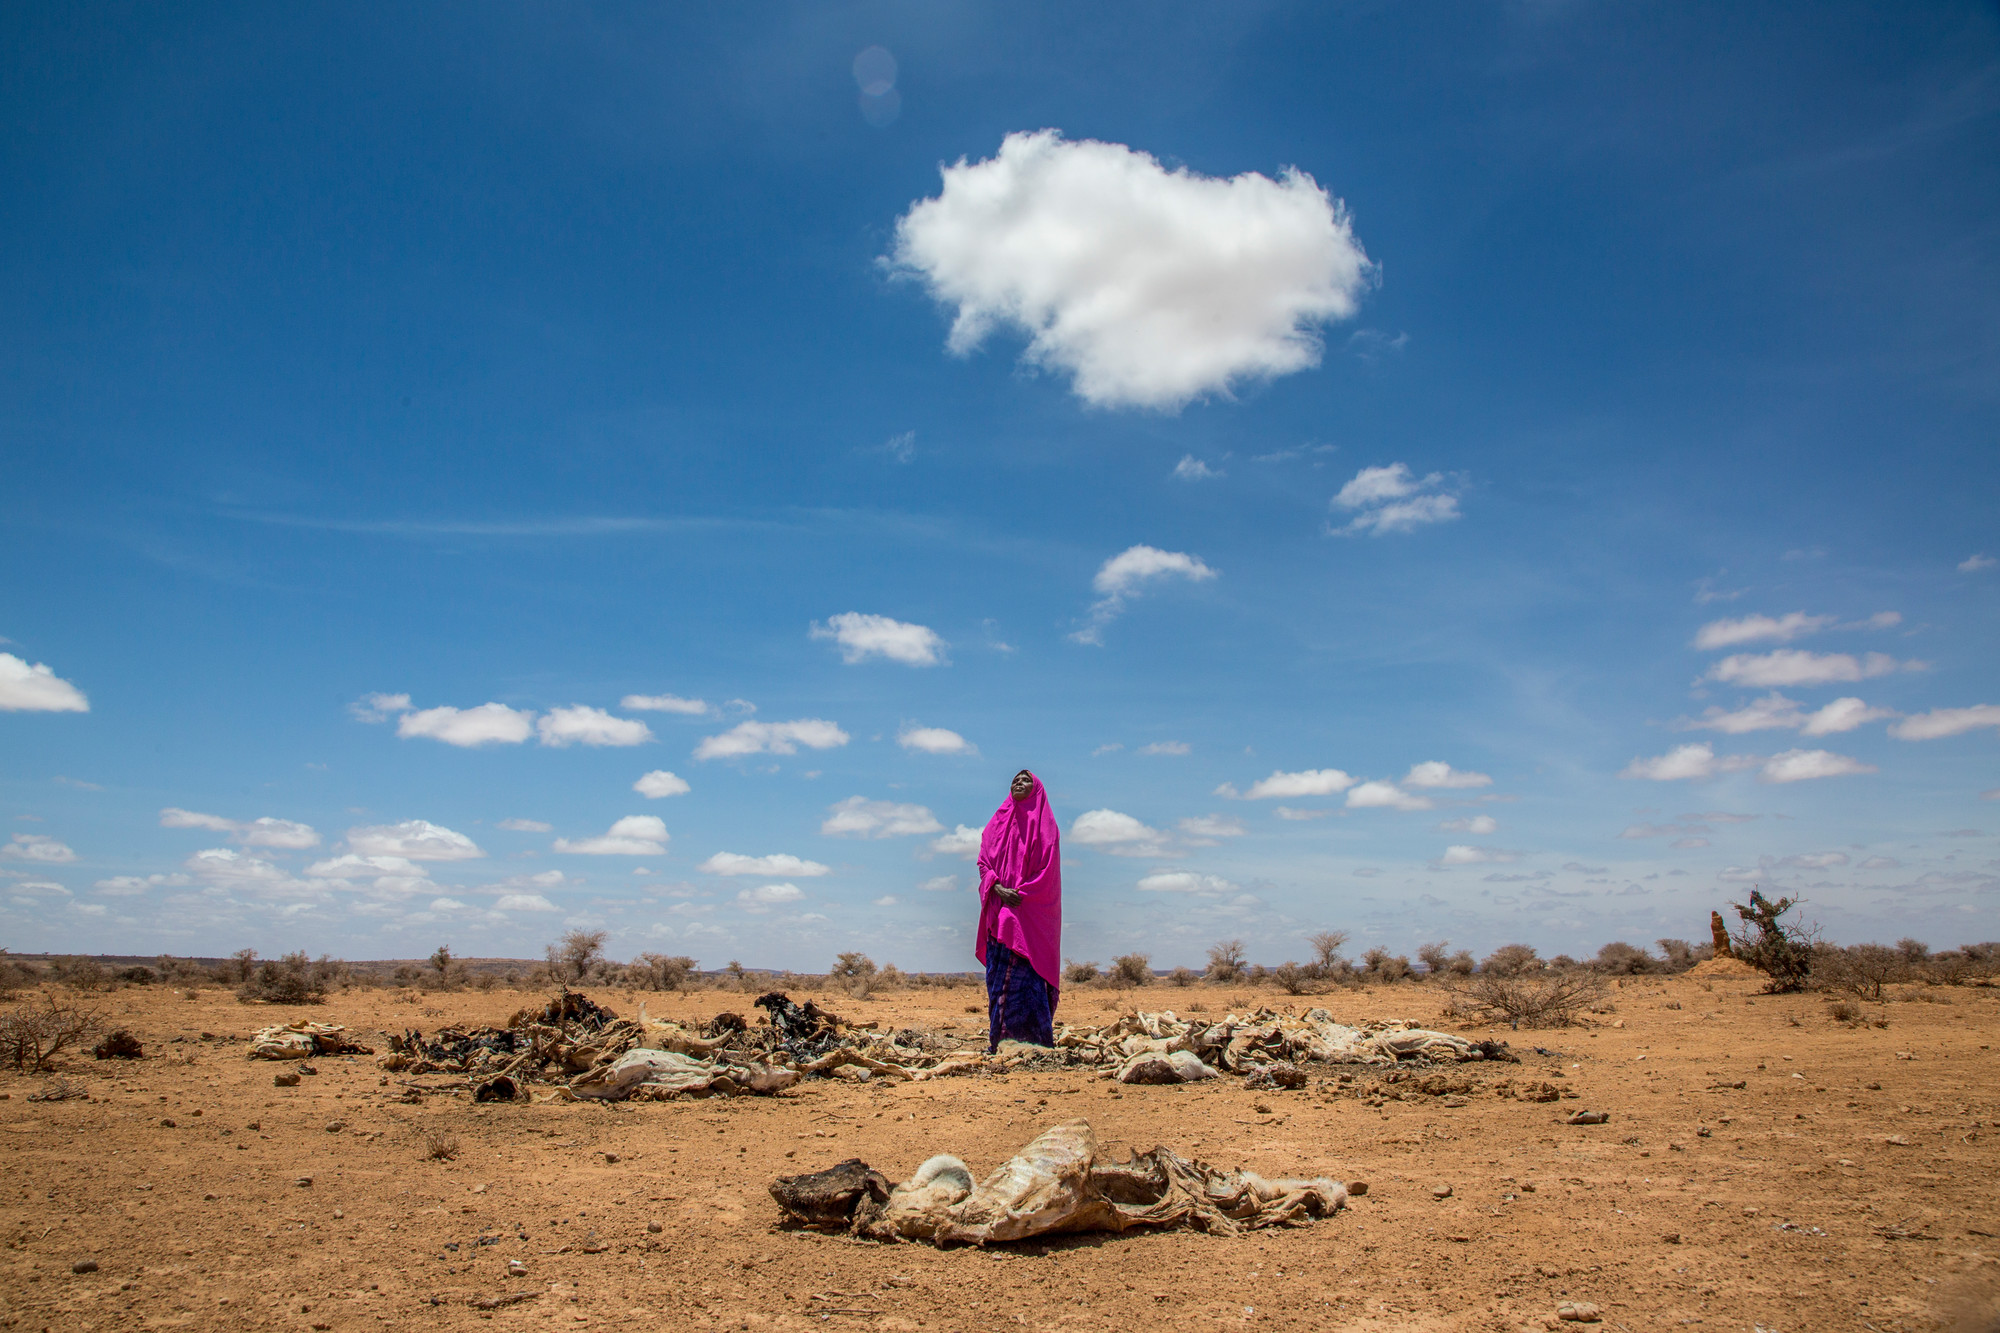 A woman stands in a dry field.